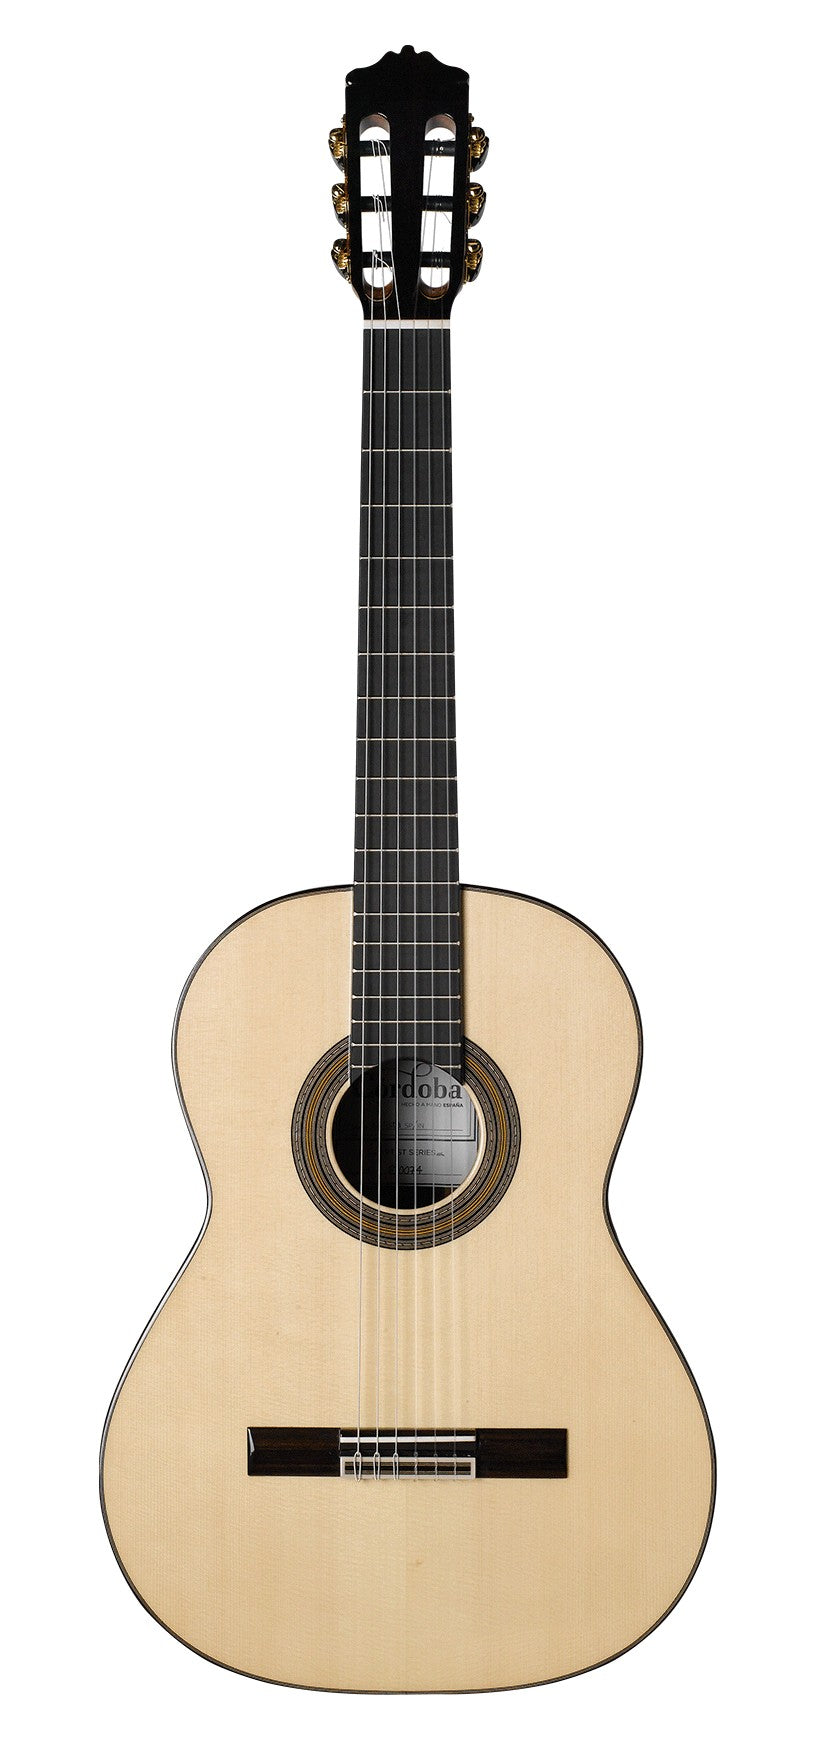 Solista SP All Solid Spruce/Rosewood Nylon String Acoustic Guitar